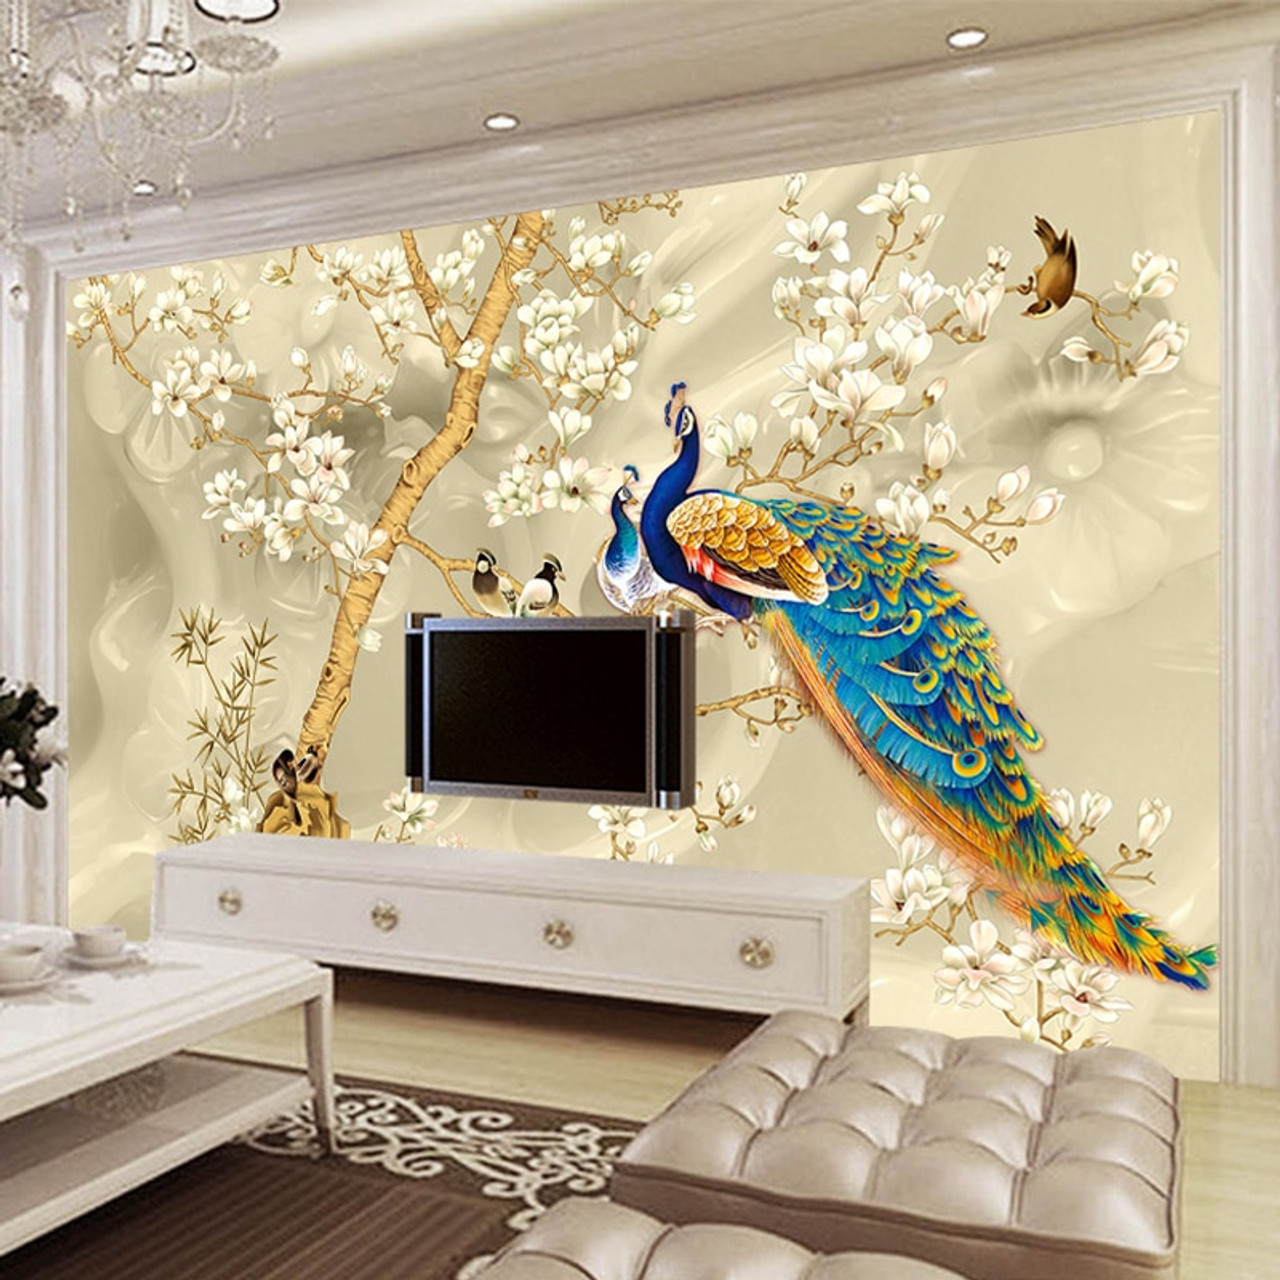 Custom Mural Wallpaper 3d Stereo Magnolia Flowers Peacock Wall